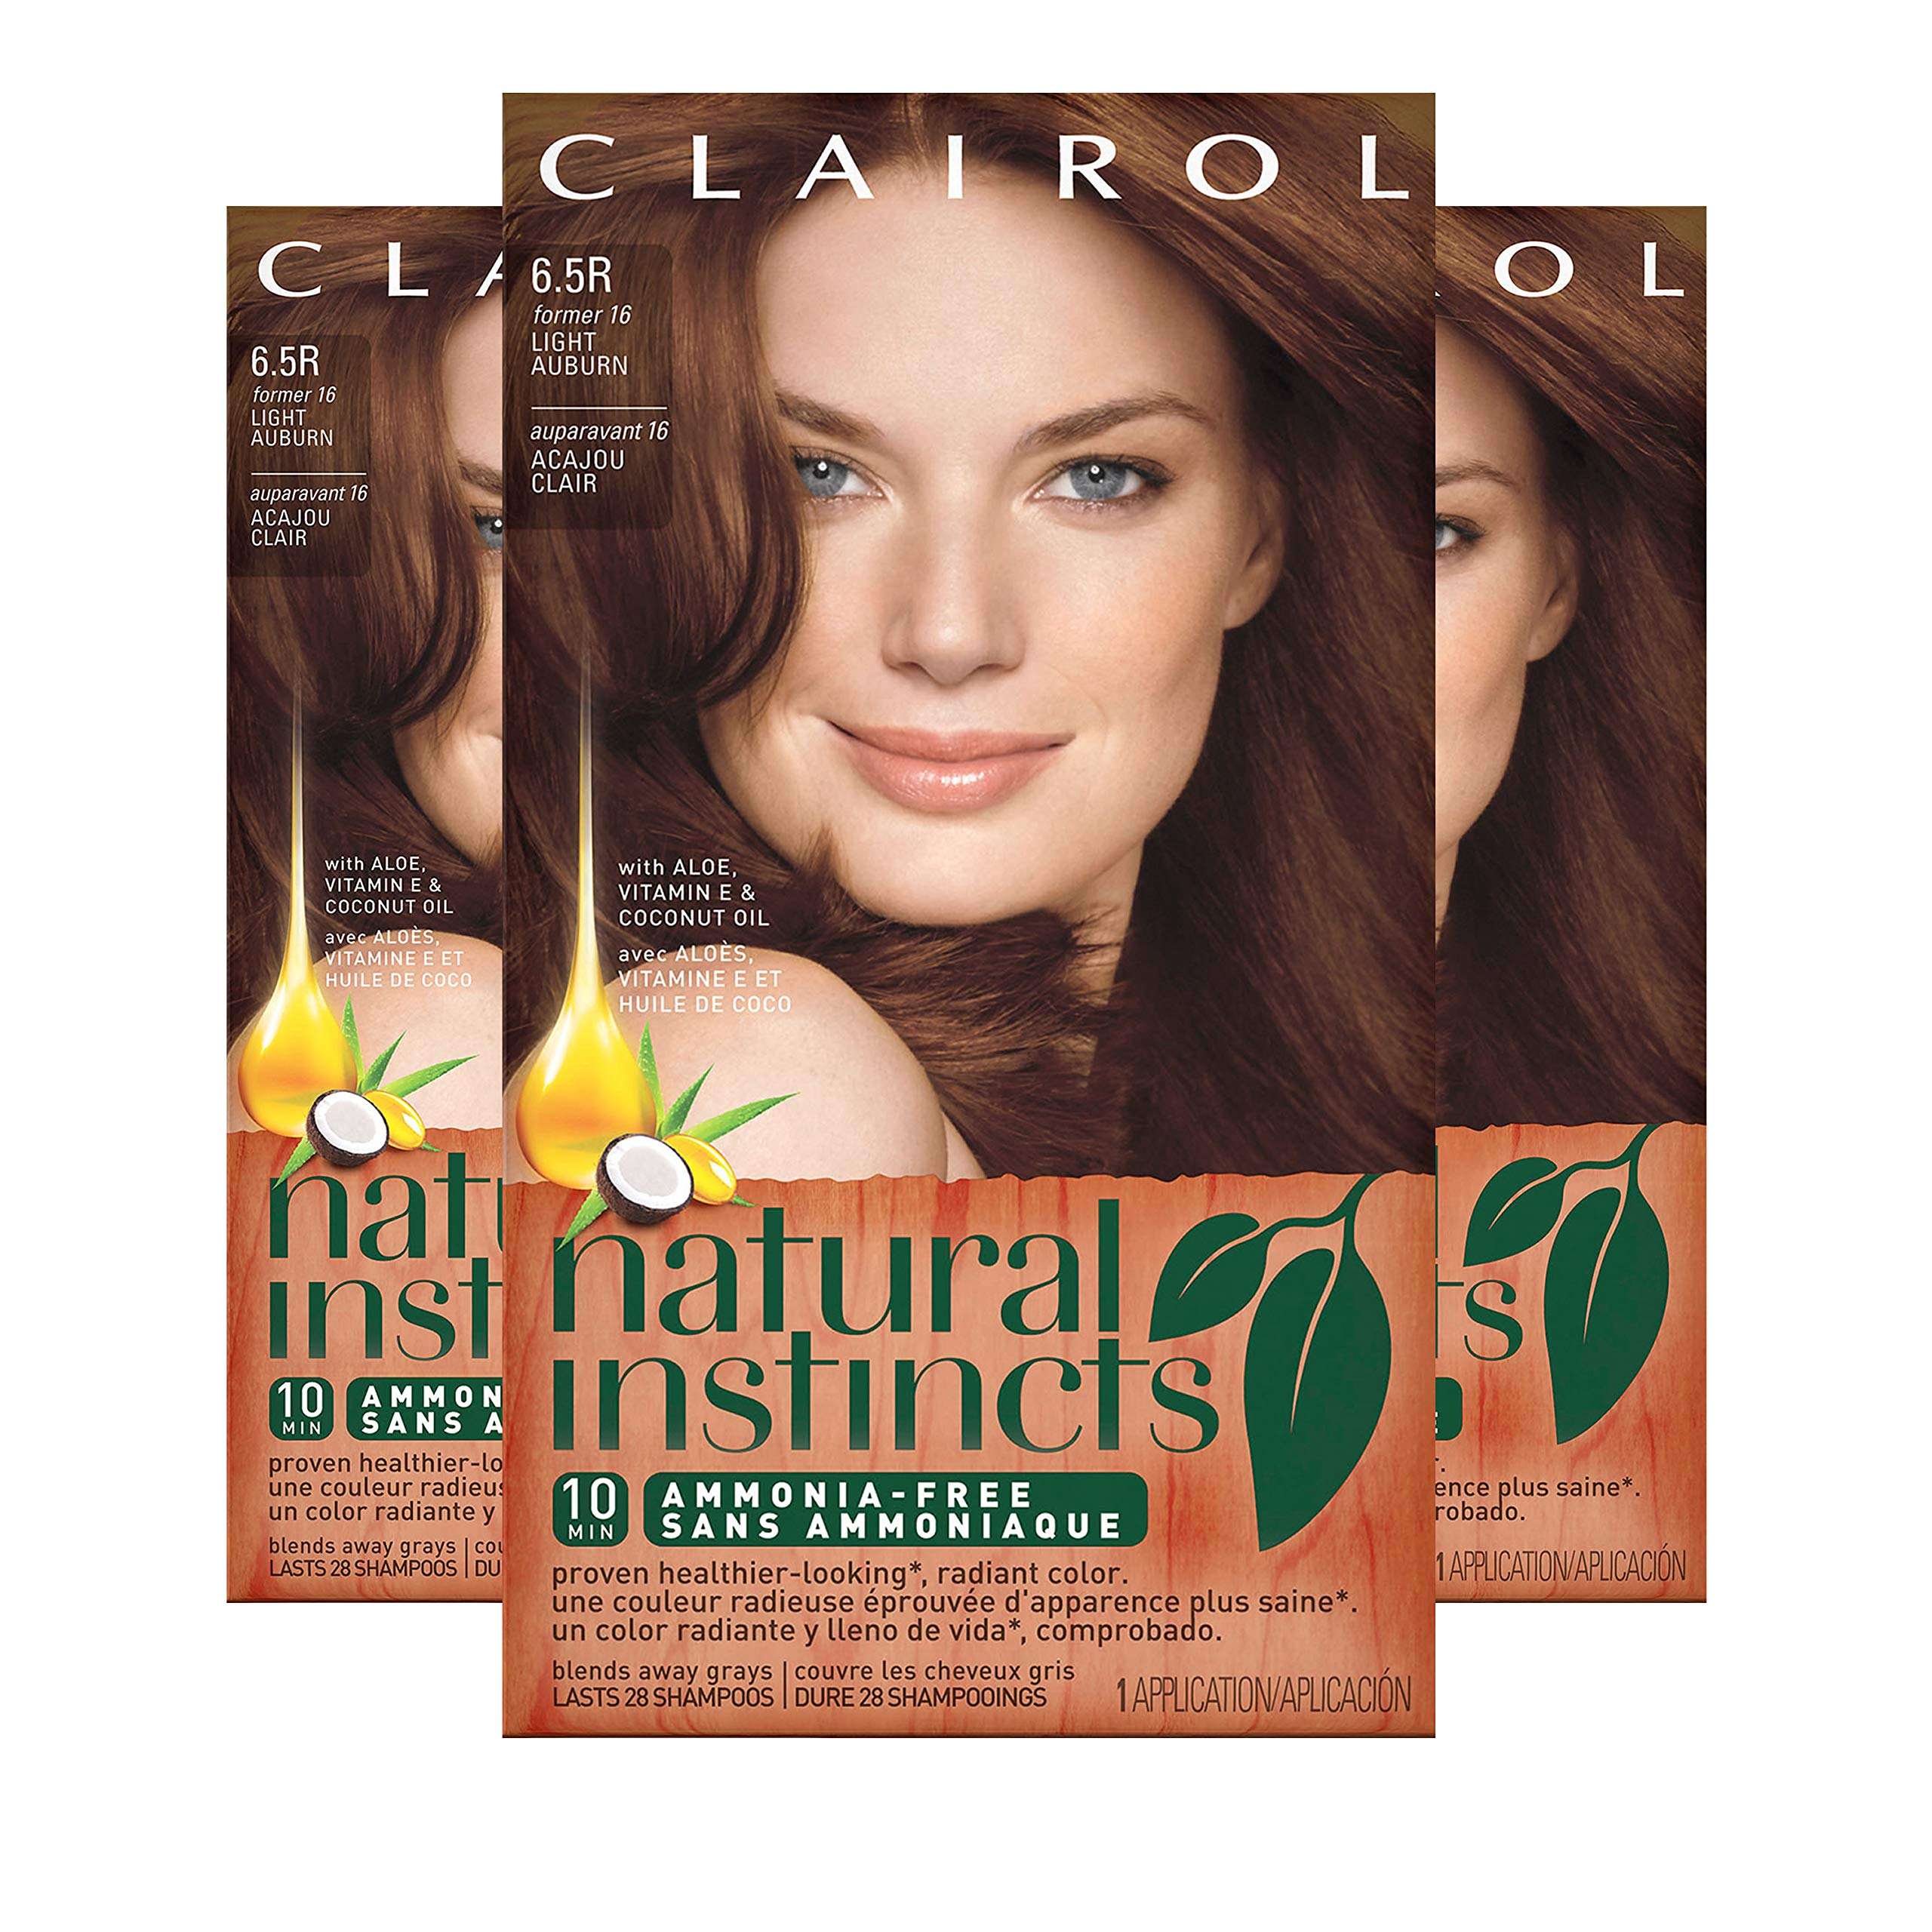 Clairol Natural Instincts Hair Color 16 Spiced Tea Light Auburn, Semi-permanent Hair Color, 3 Count by Clairol